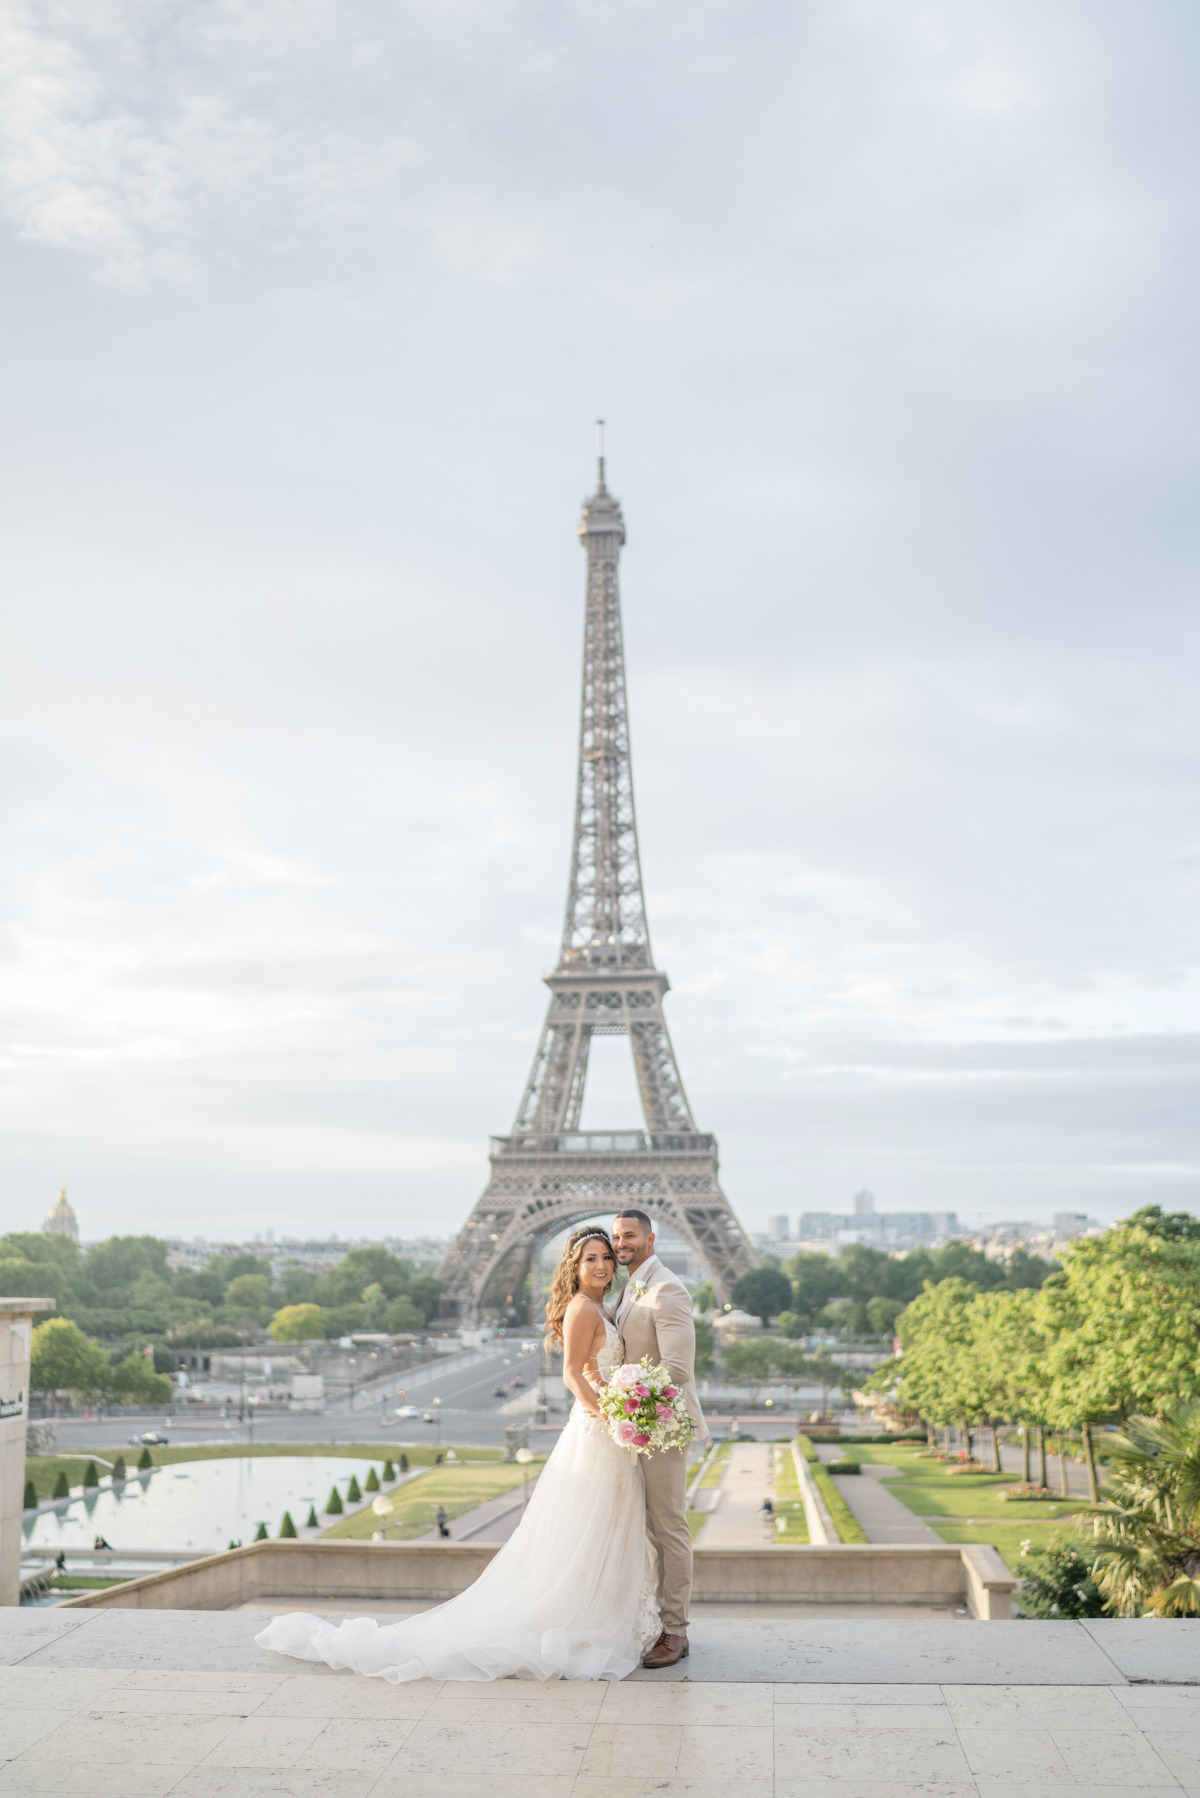 Paris wedding in front of the Eiffel Tower